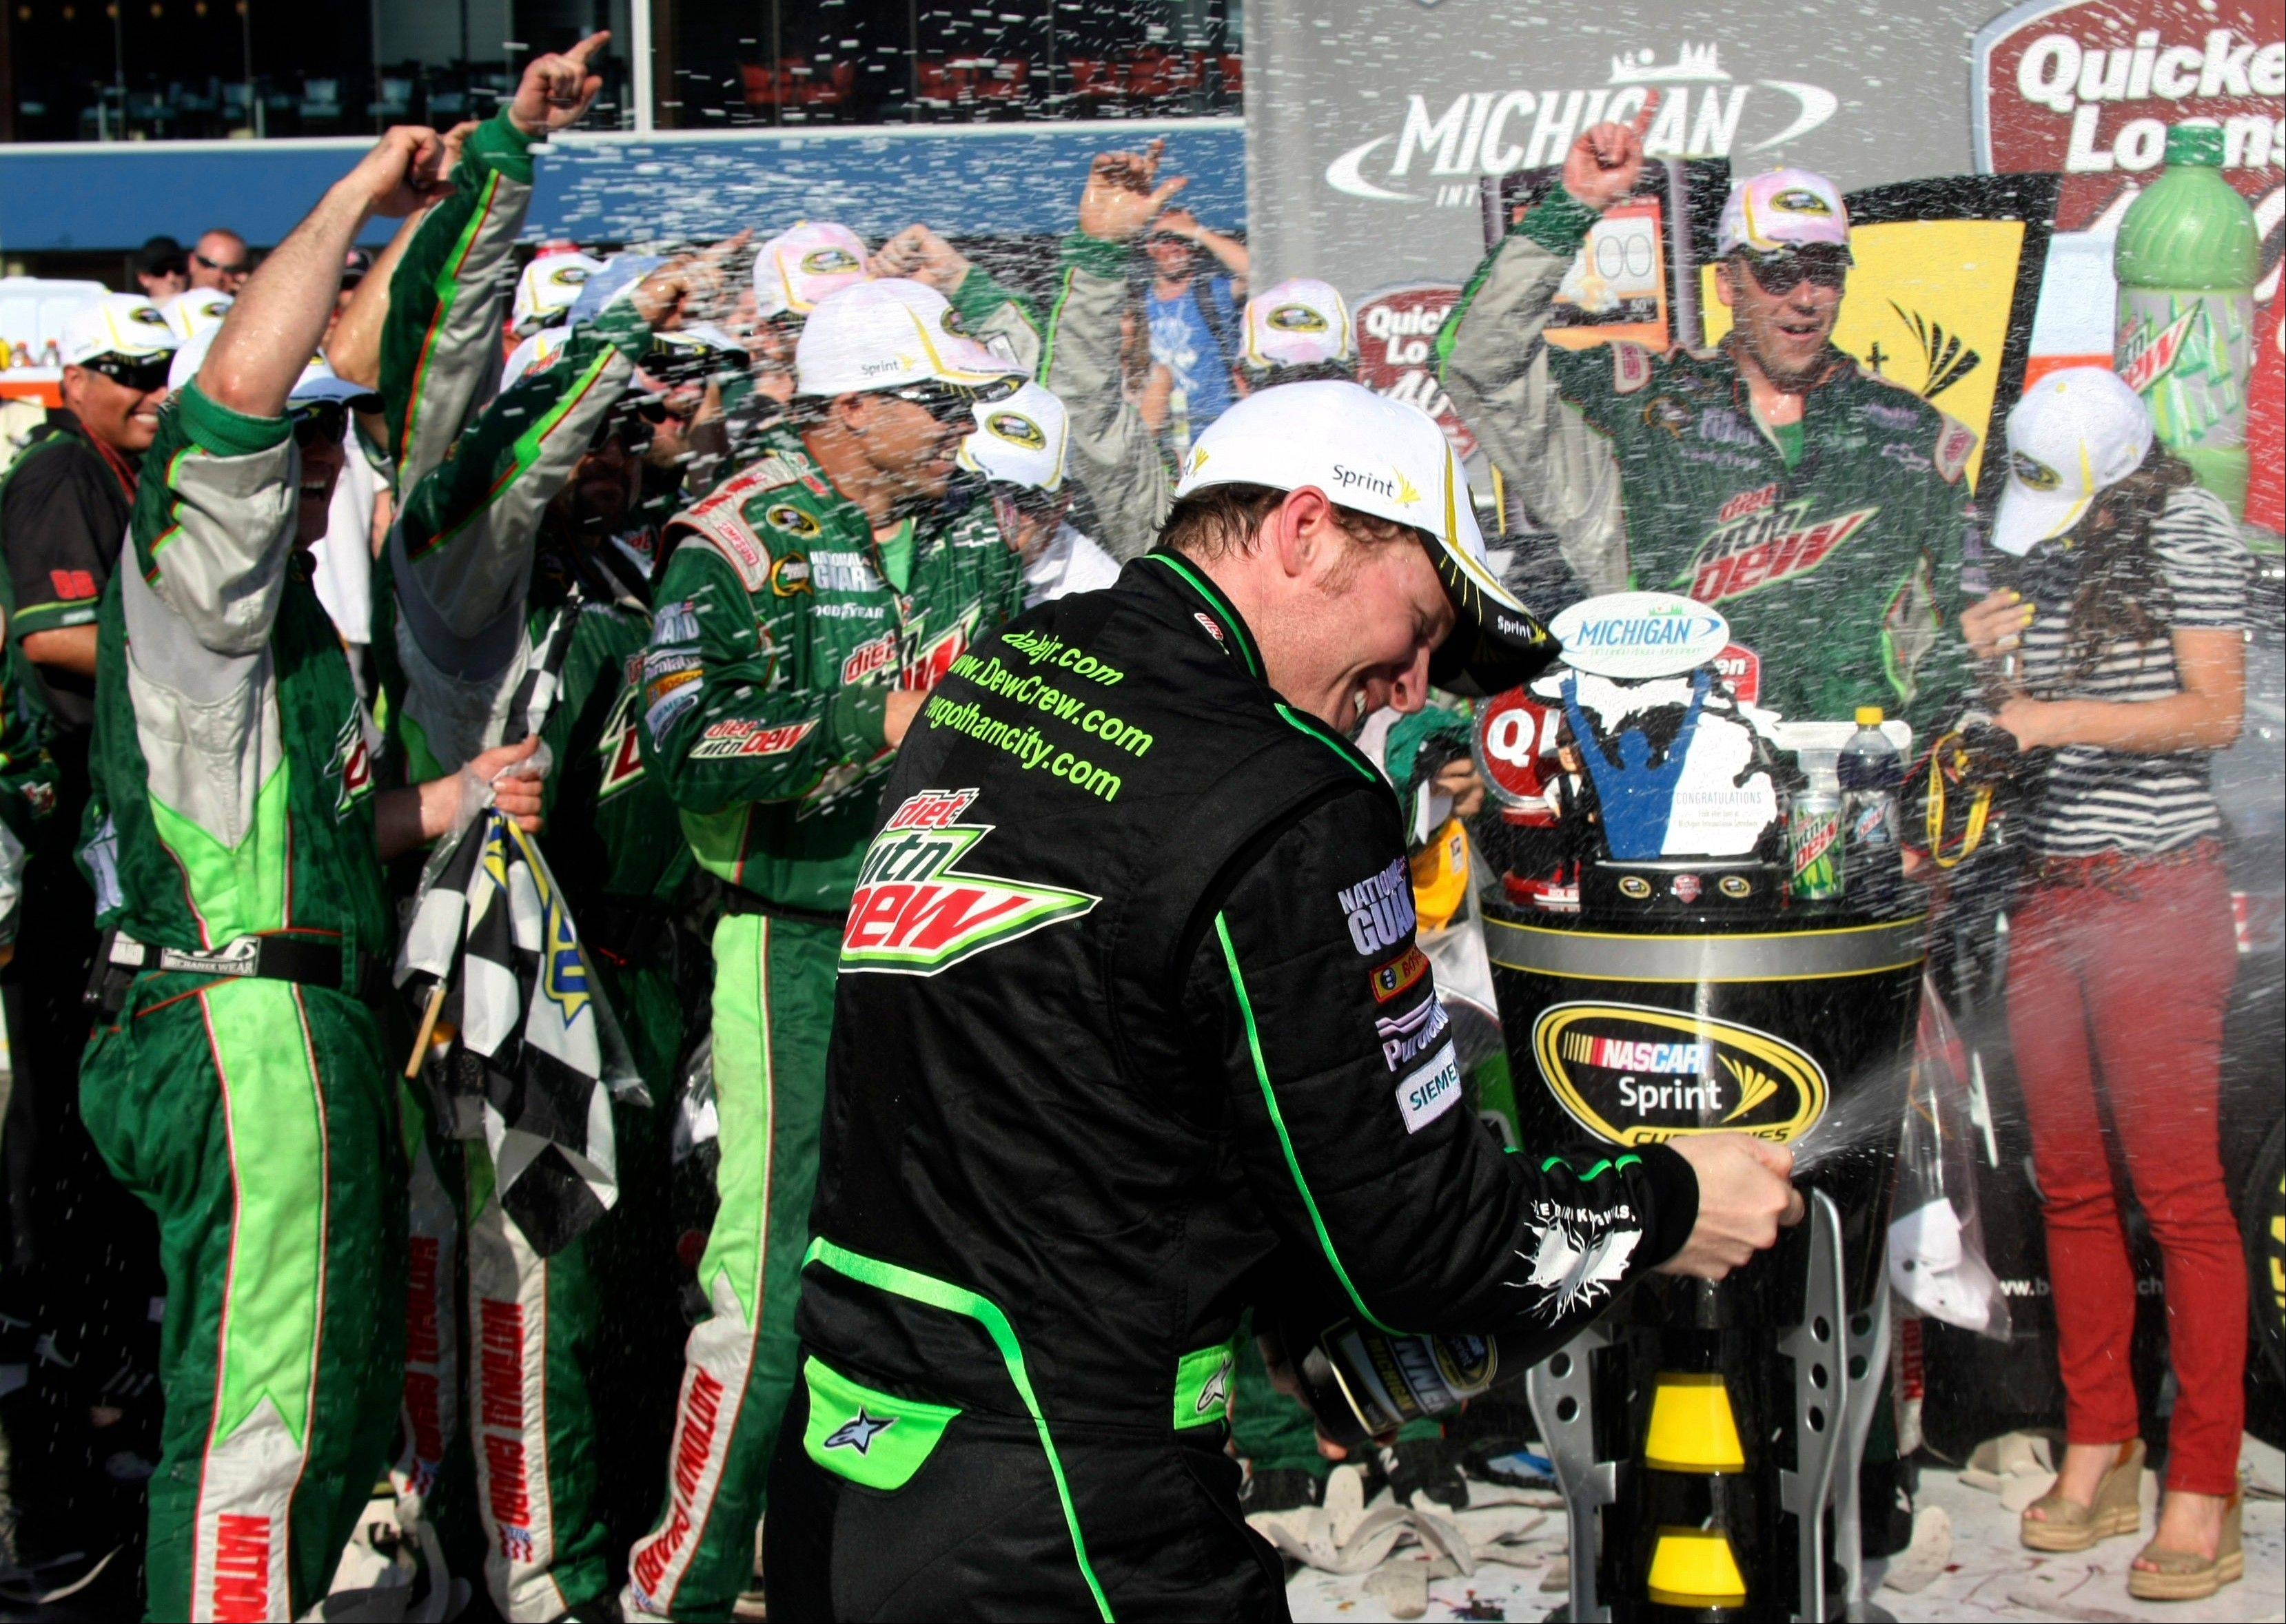 Dale Earnhardt Jr. celebrates after winning the NASCAR Sprint Cup Series Quicken Loans 400 auto race at Michigan International Speedway Sunday in Brooklyn, Mich.